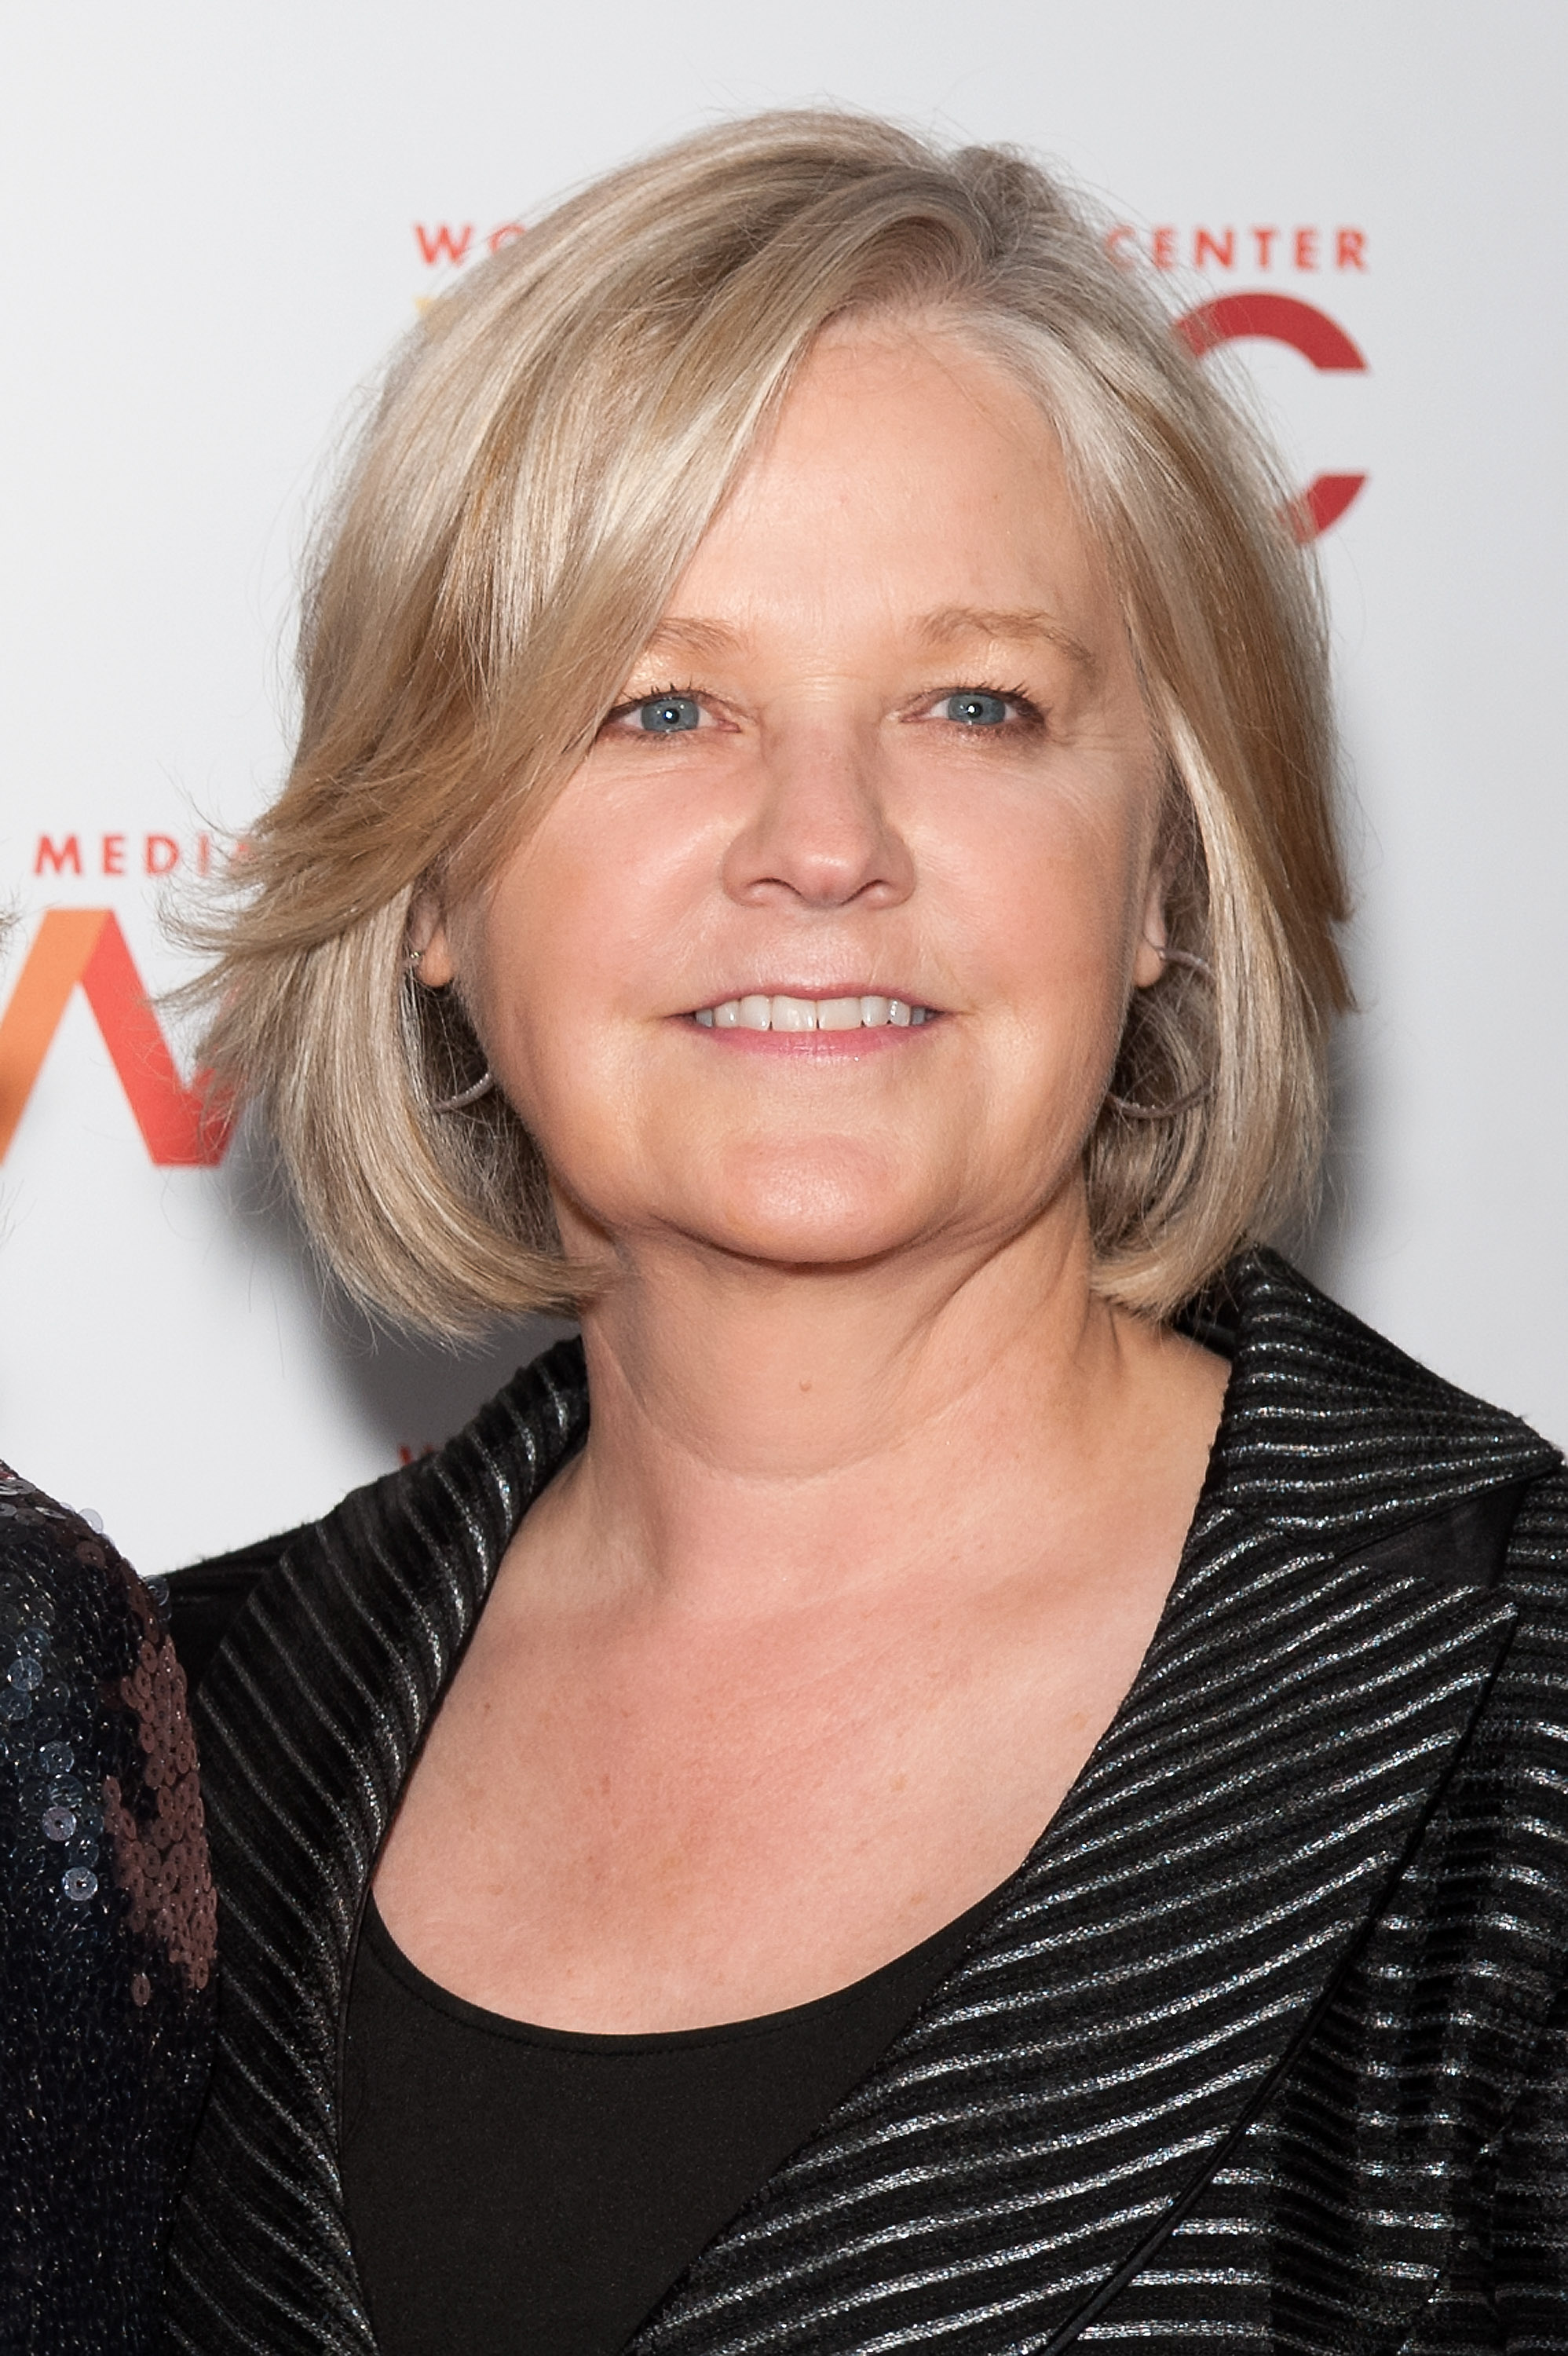 Martha Nelson attends the 2013 Women's Media Awards at 583 Park Avenue on October 8, 2013 in New York City.